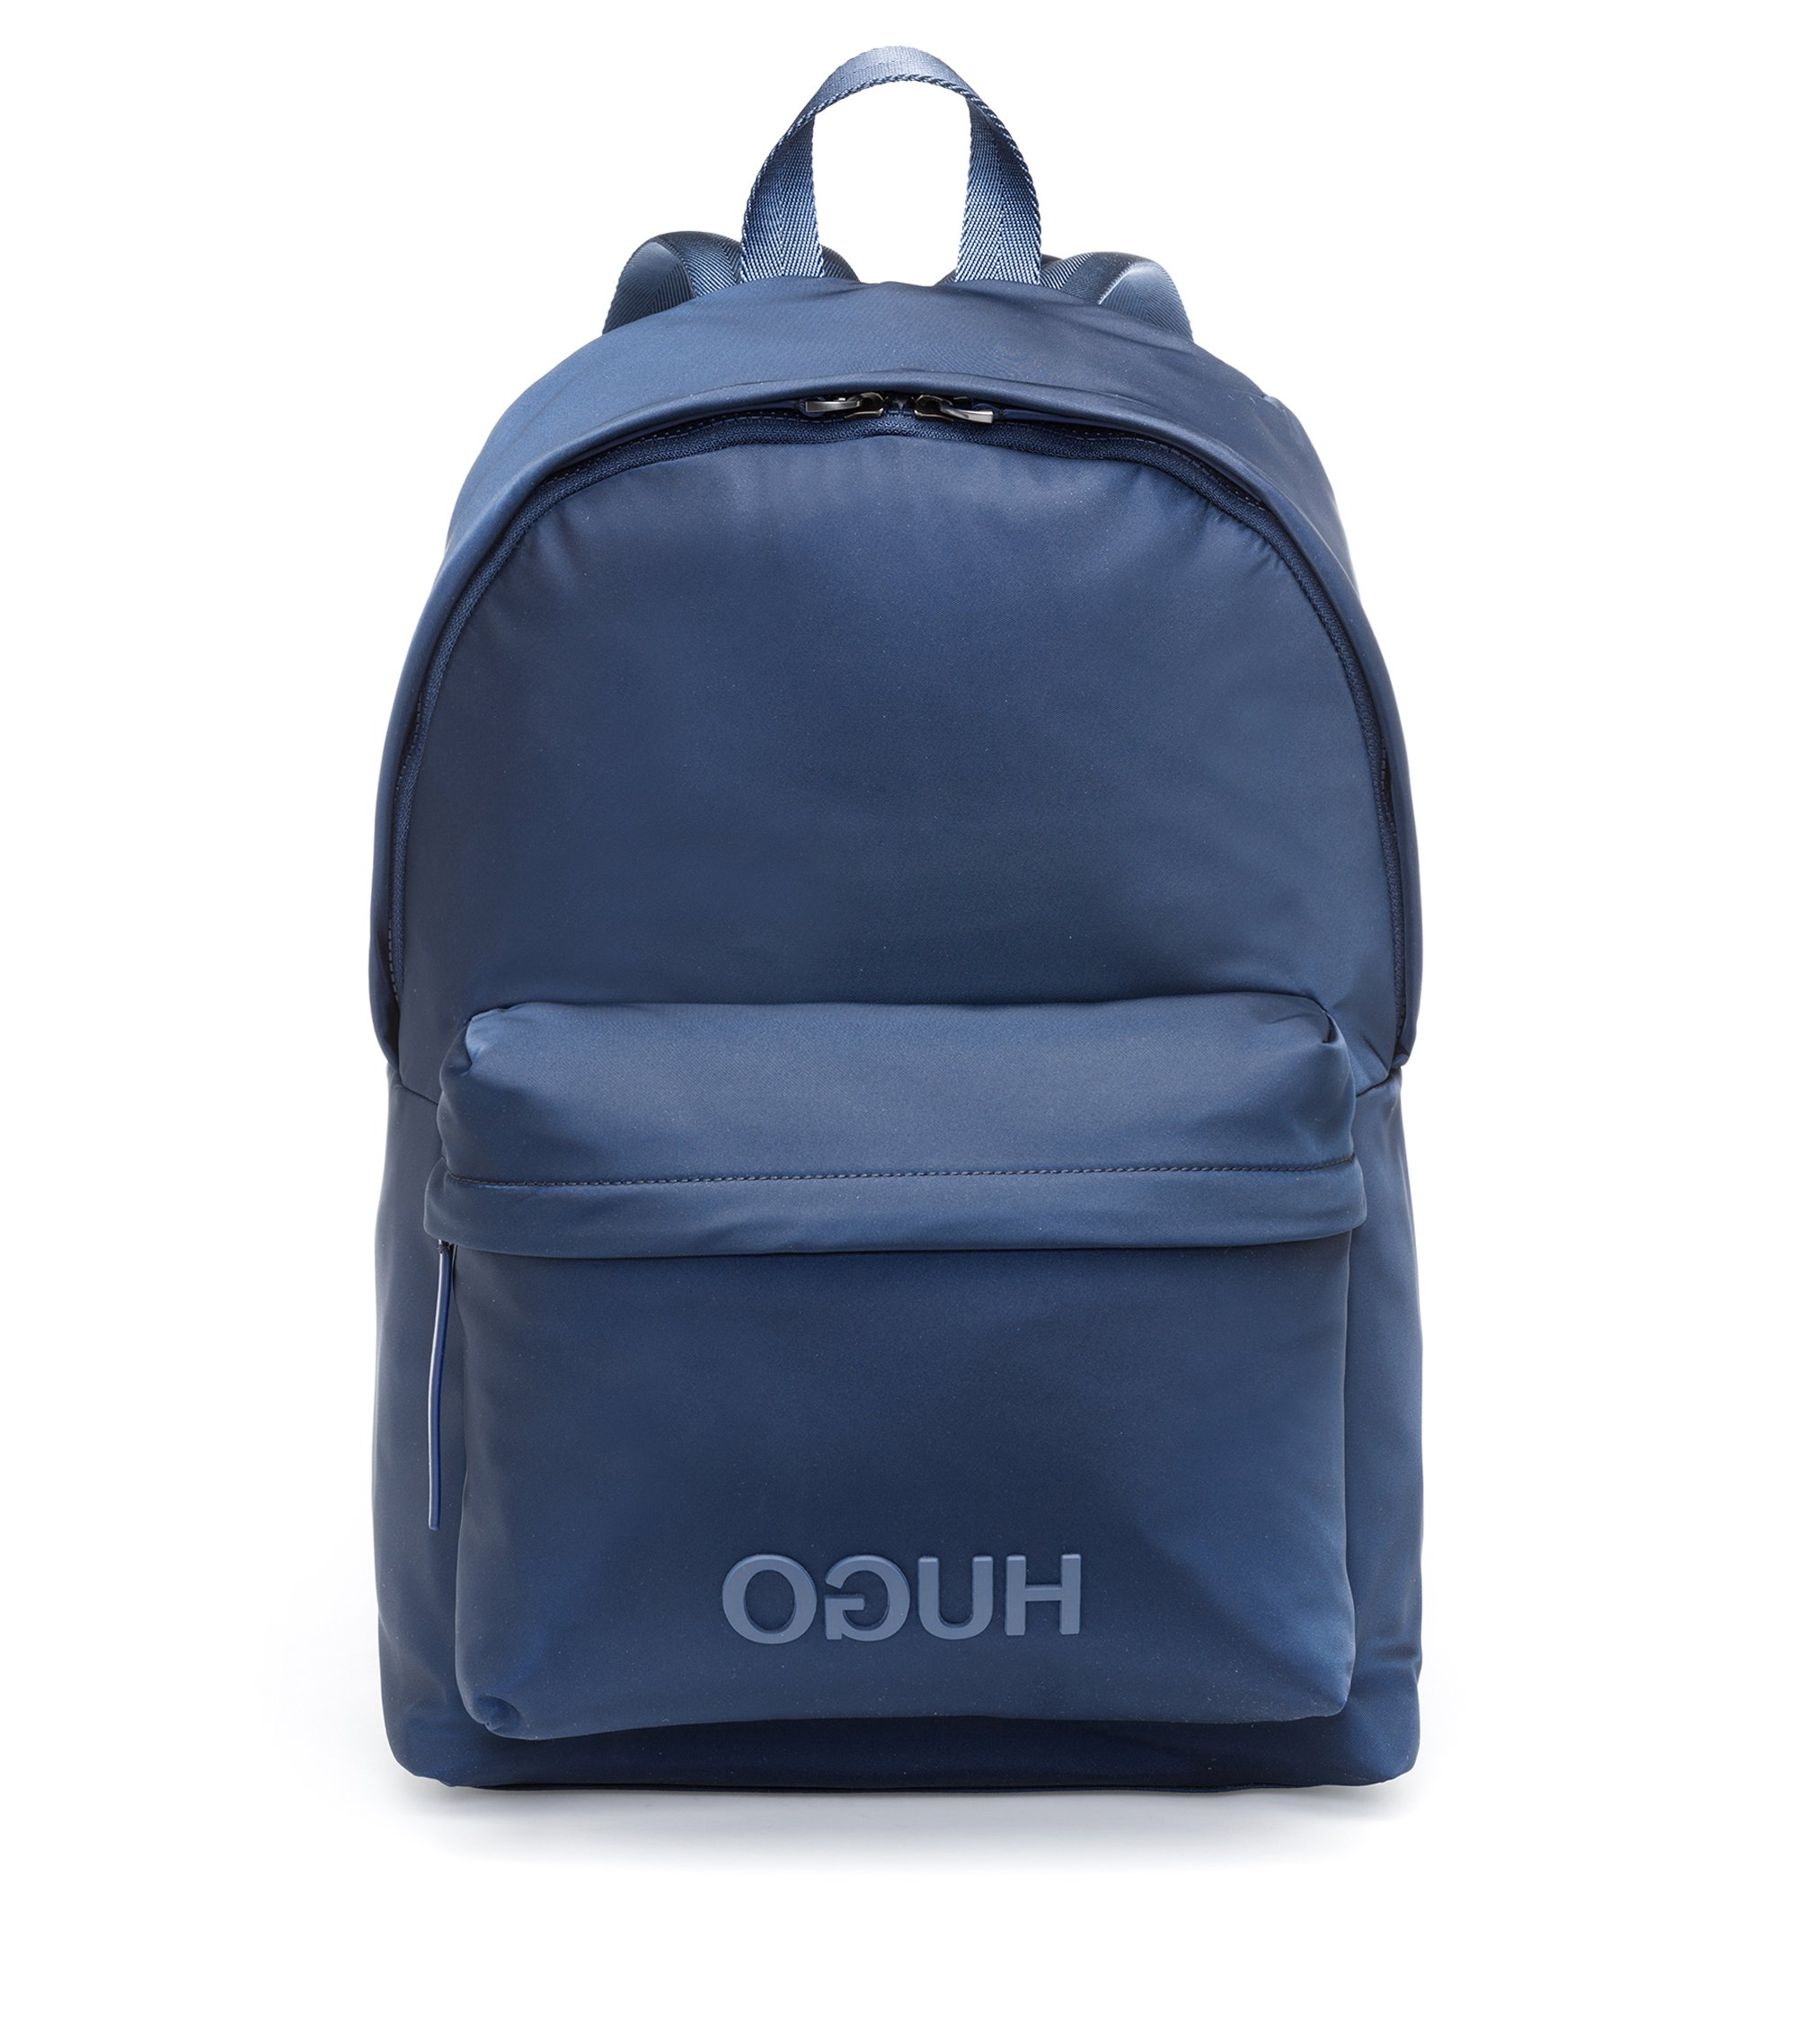 Reversed-logo backpack in nylon gabardine, Dark Blue